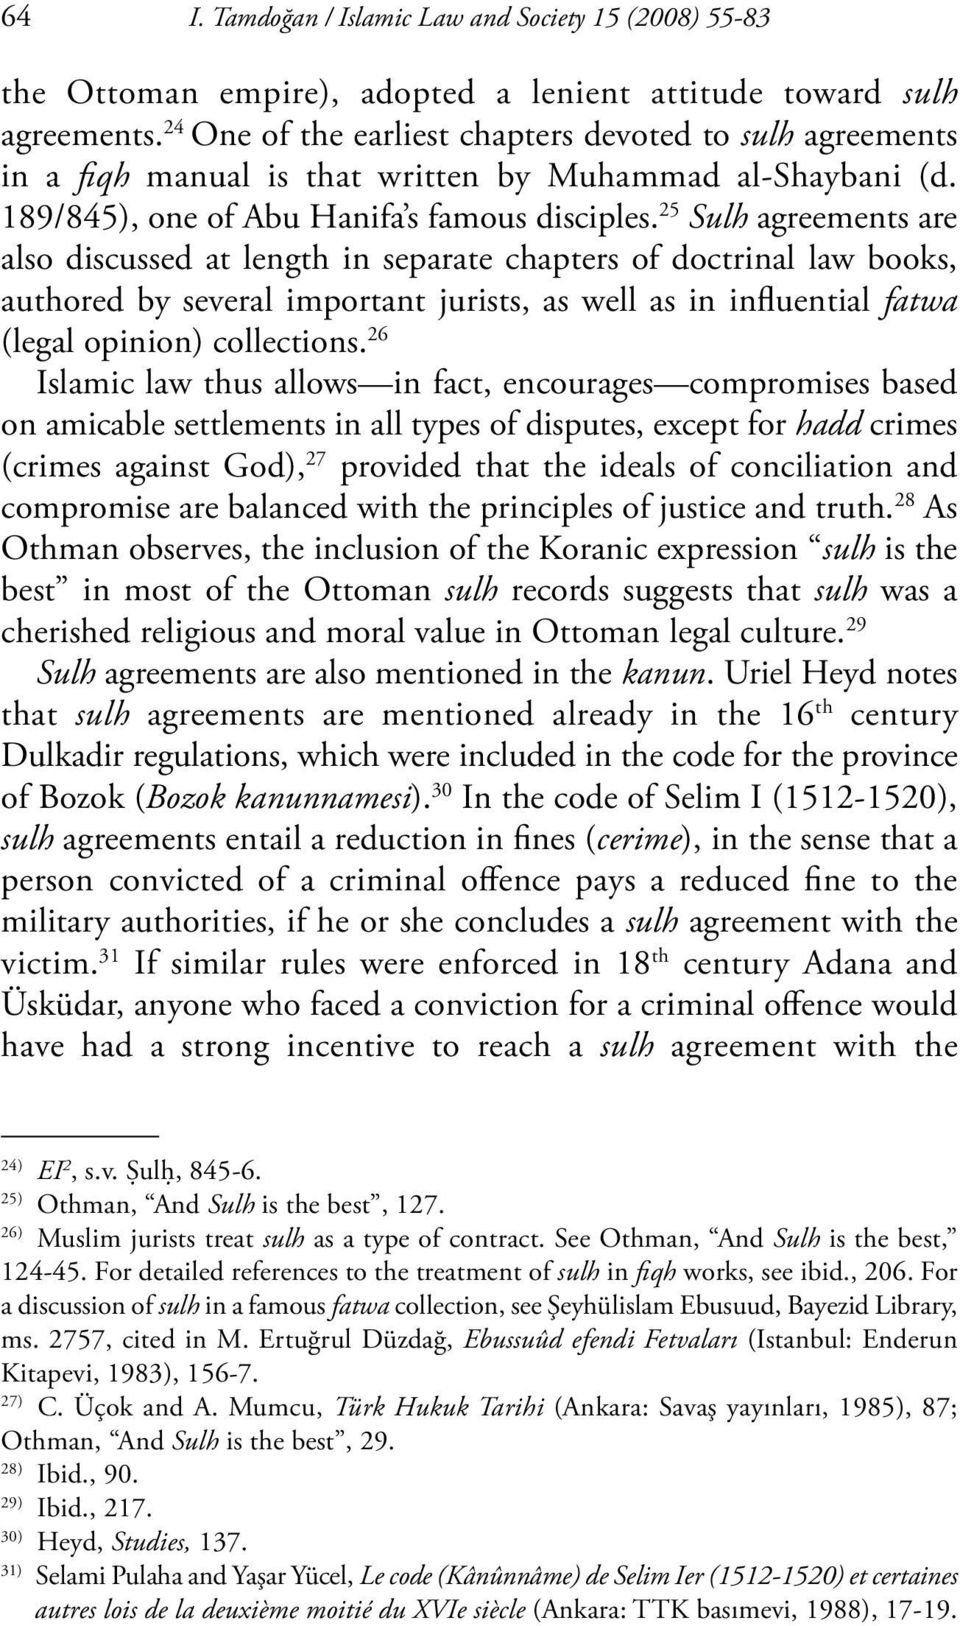 25 Sulh agreements are also discussed at length in separate chapters of doctrinal law books, authored by several important jurists, as well as in influential fatwa (legal opinion) collections.